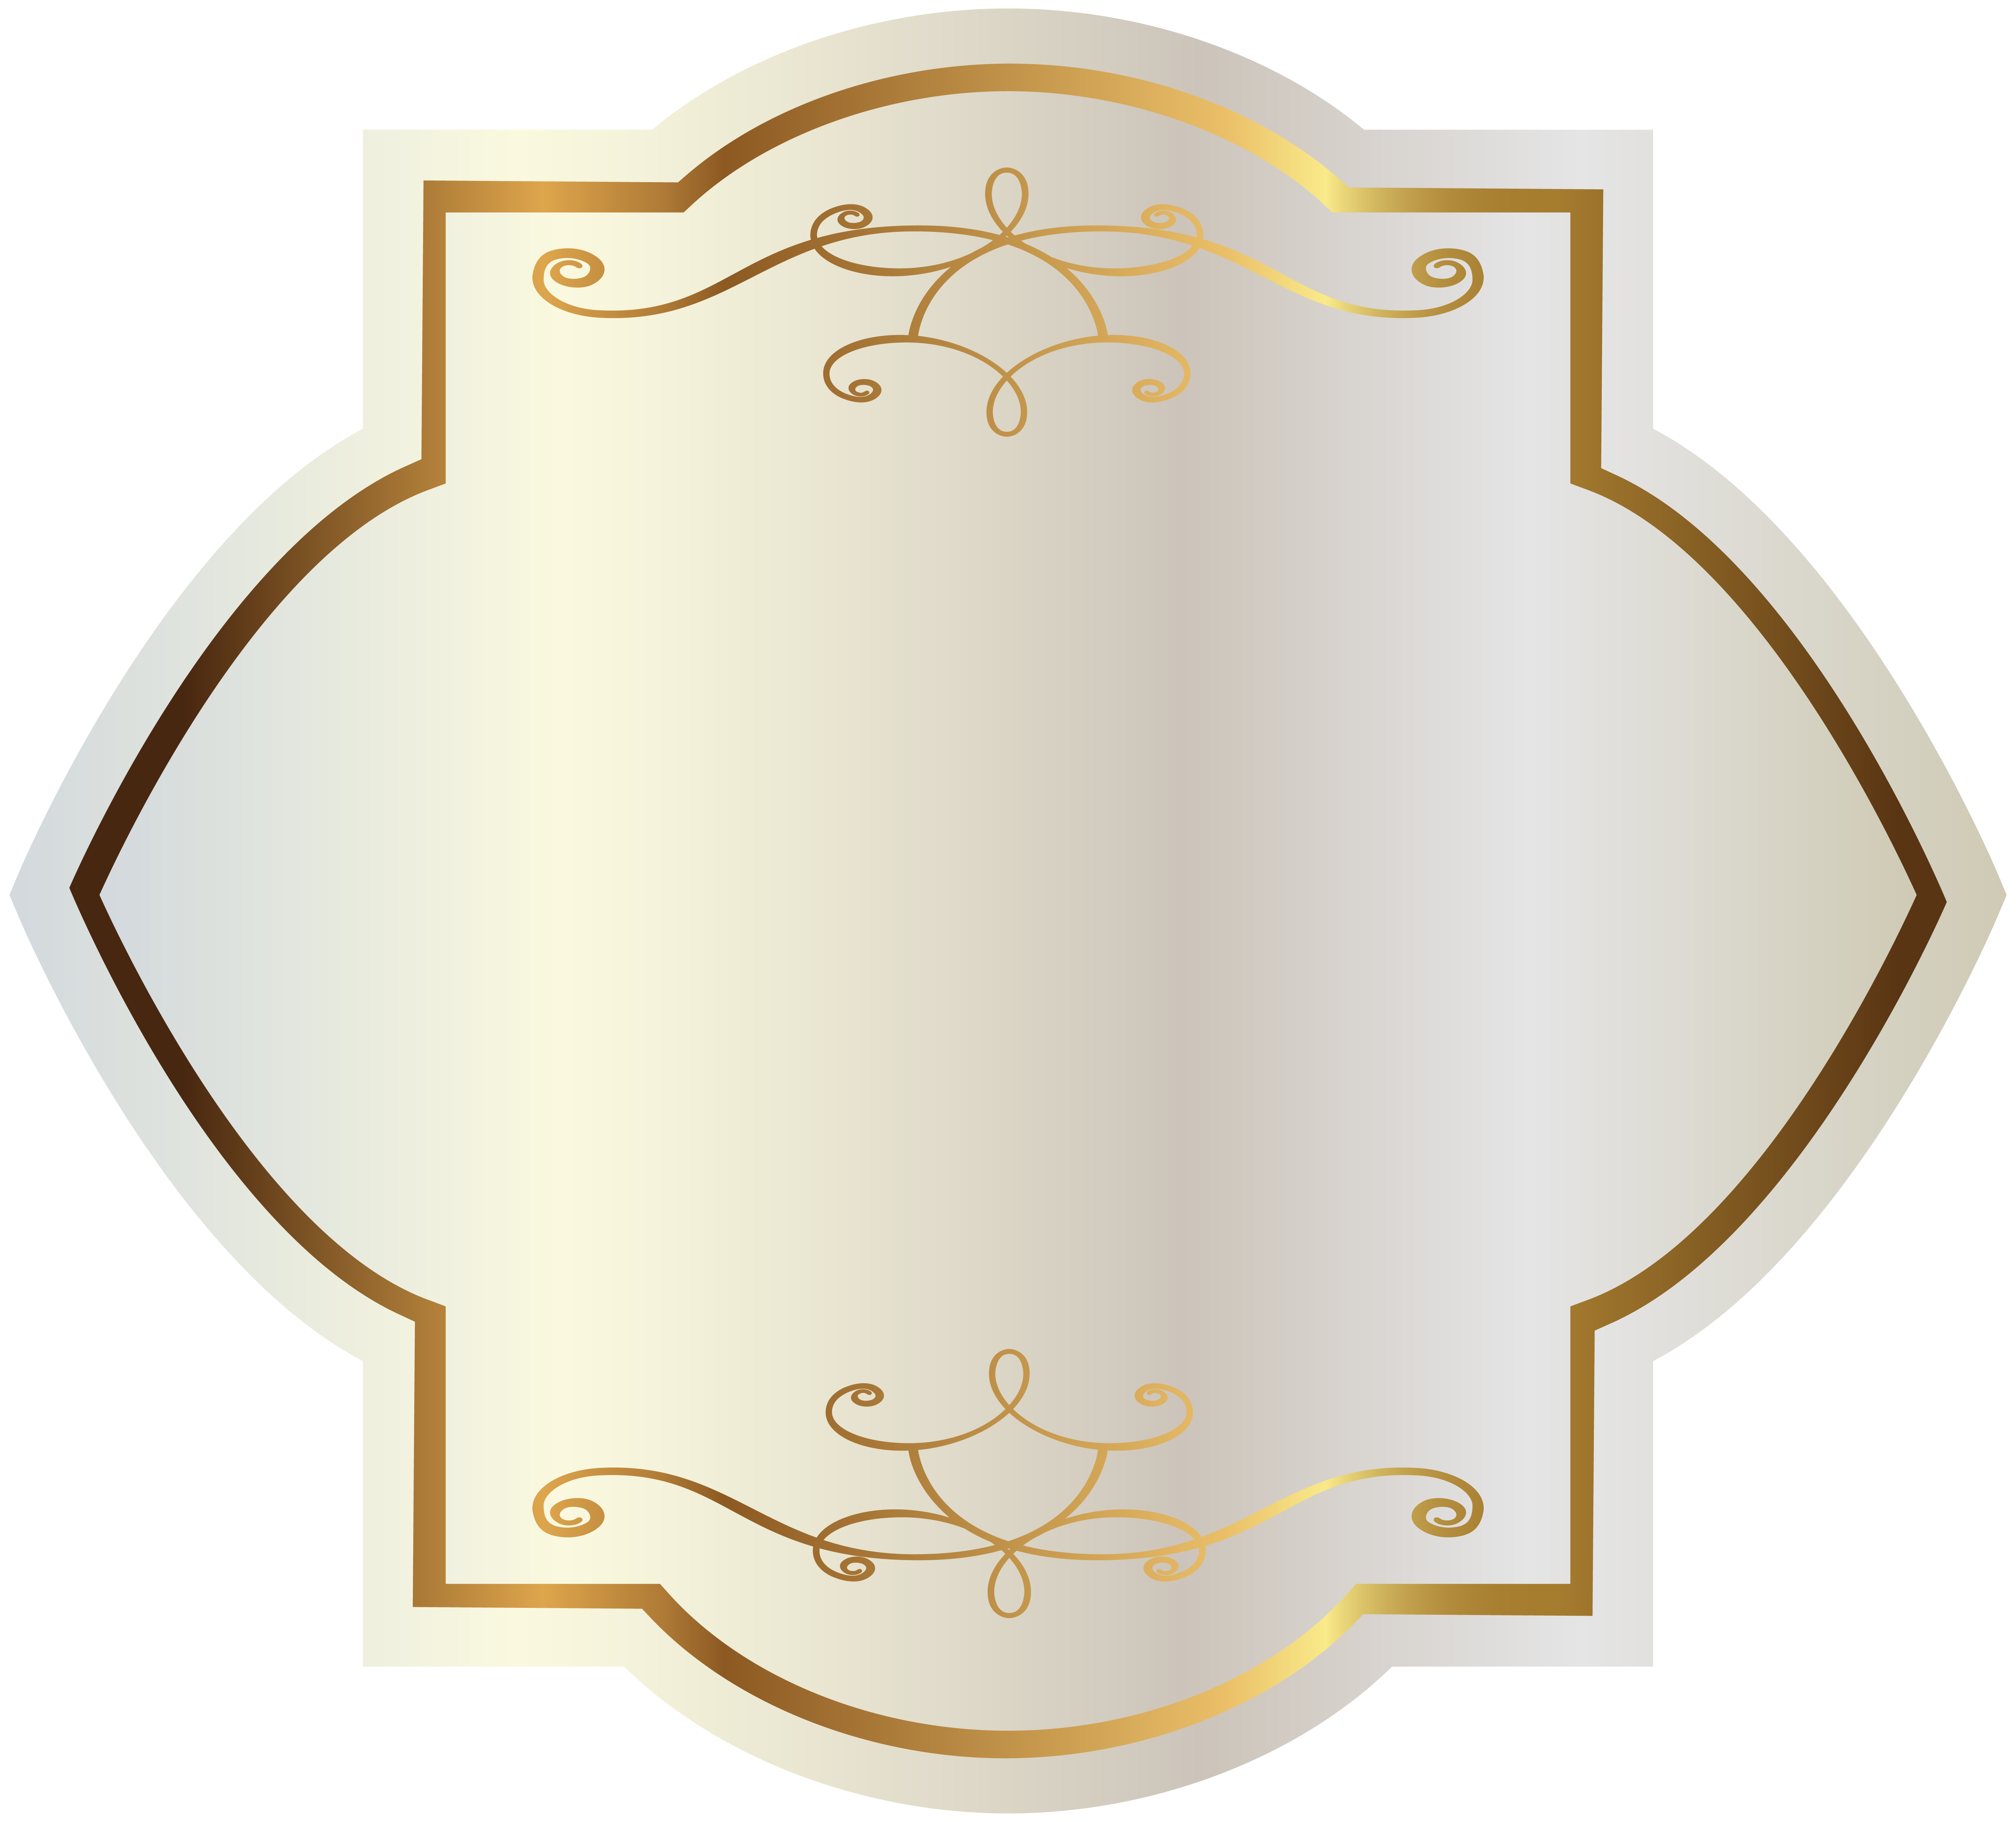 vector stock With gold decorations png. White label clipart